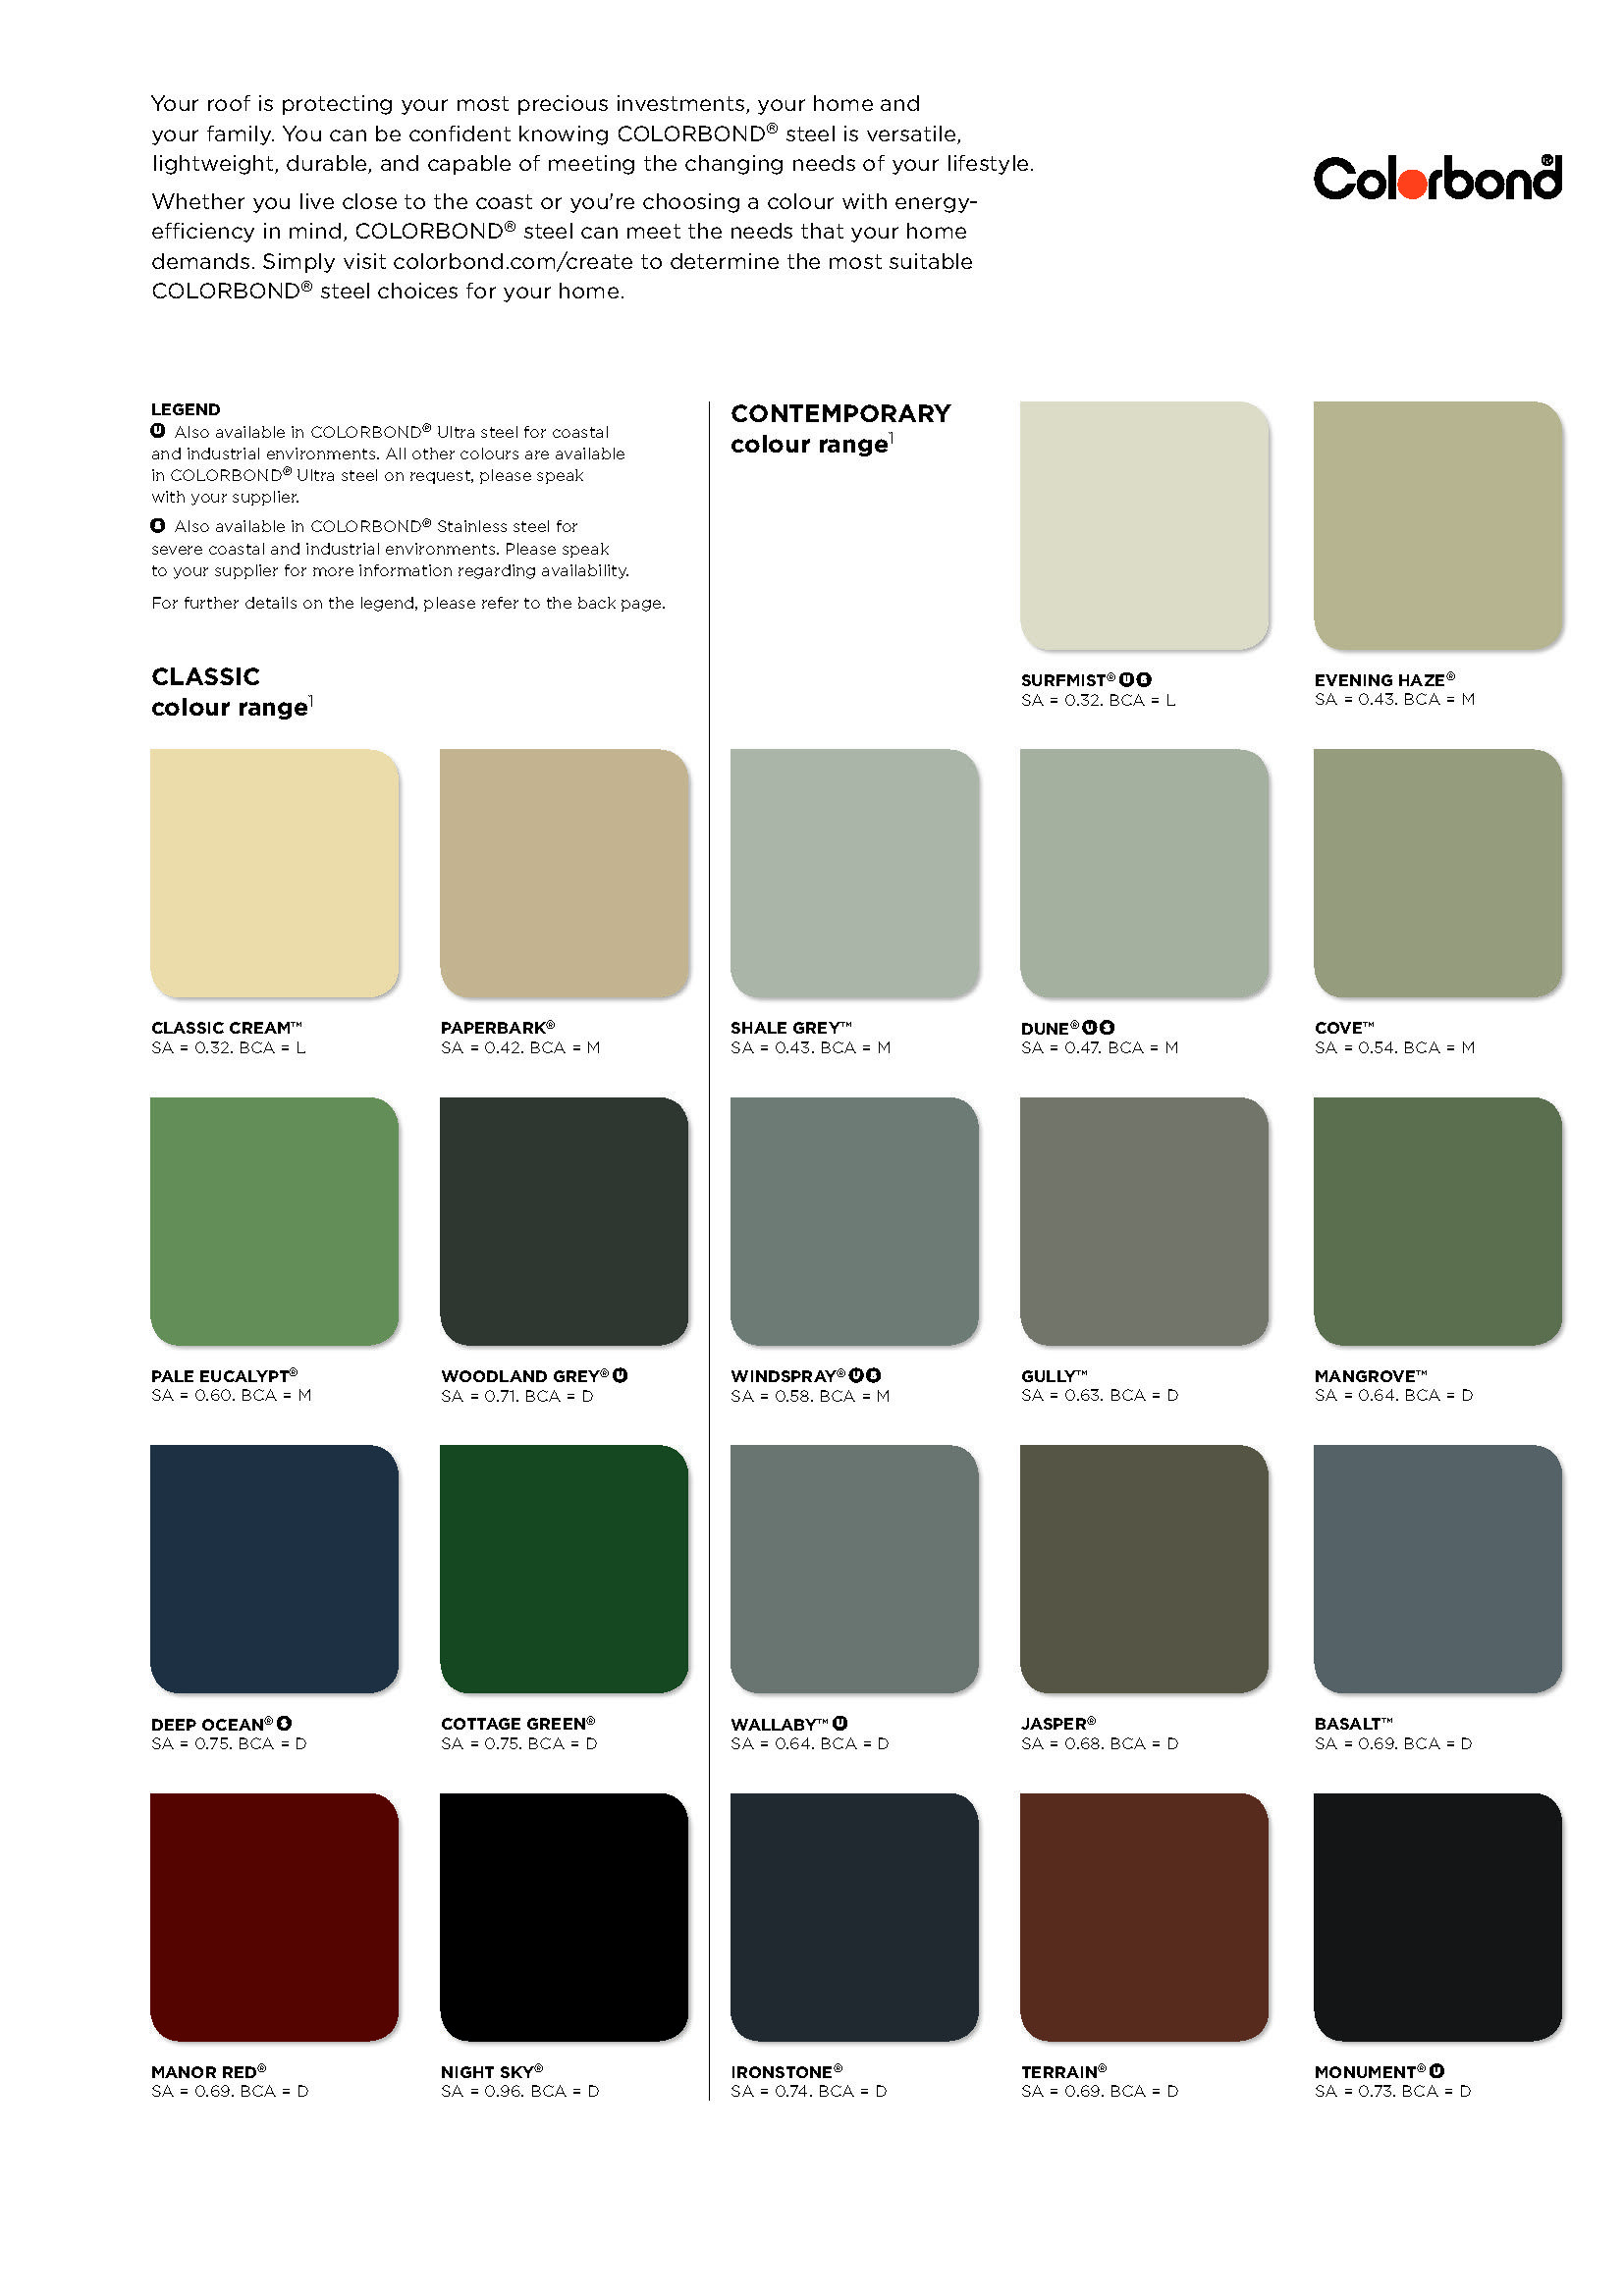 Available in all colorbond colours eaves water system pinterest available in all colorbond colours geenschuldenfo Choice Image